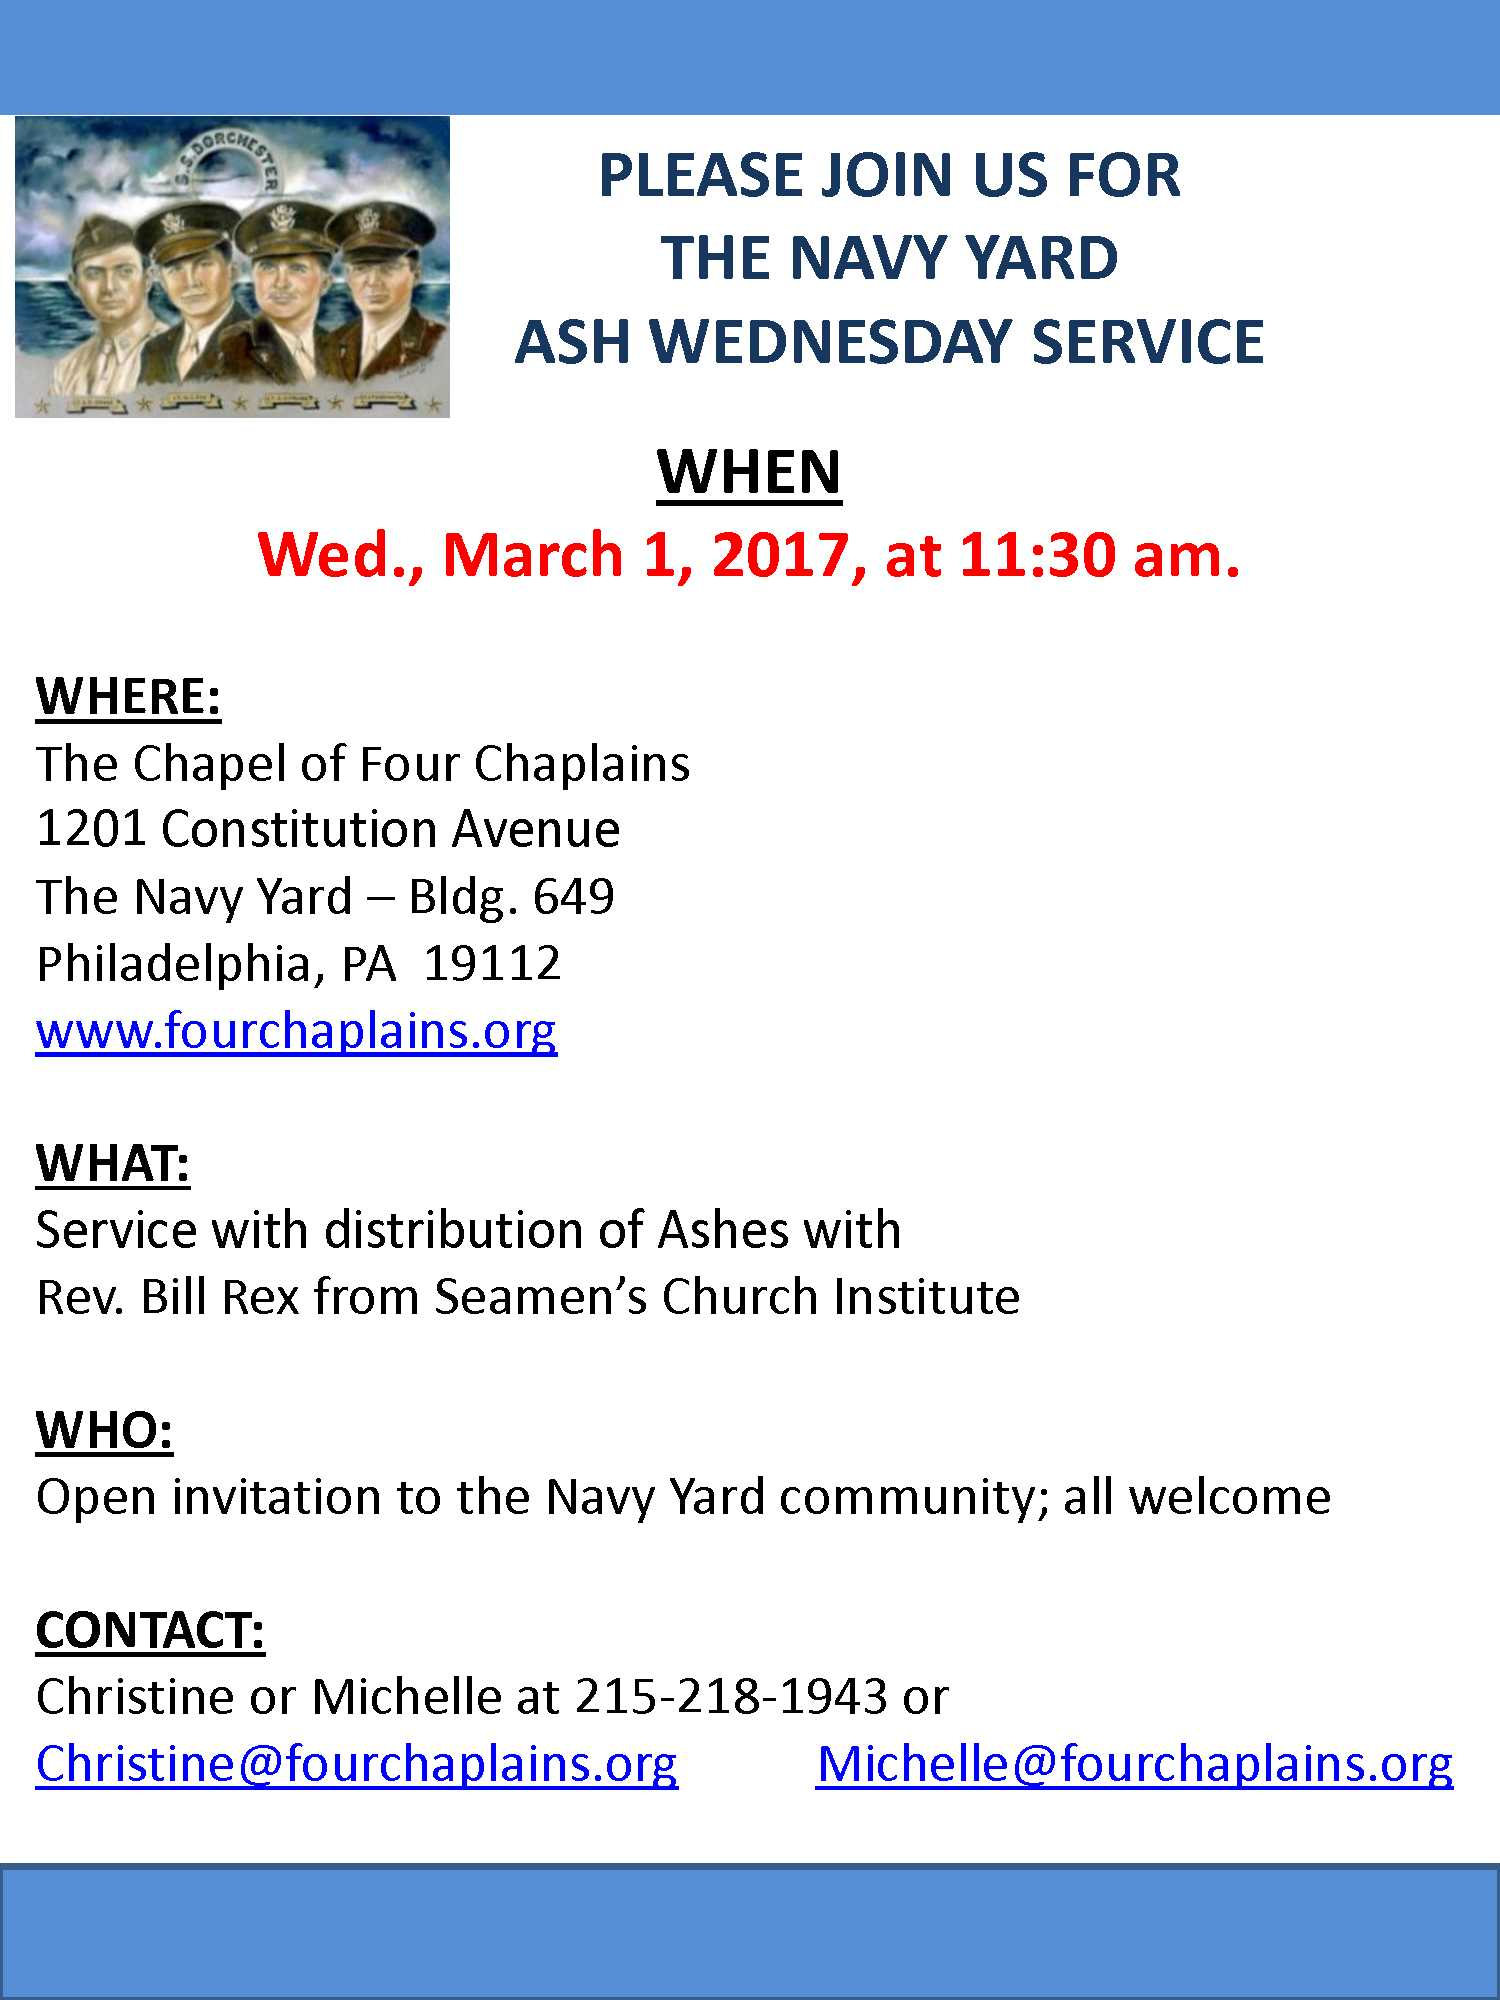 Seaman Car Service >> The Chapel of Four Chaplains invites the Navy Yard community to join Rev. Bill Rex from the ...